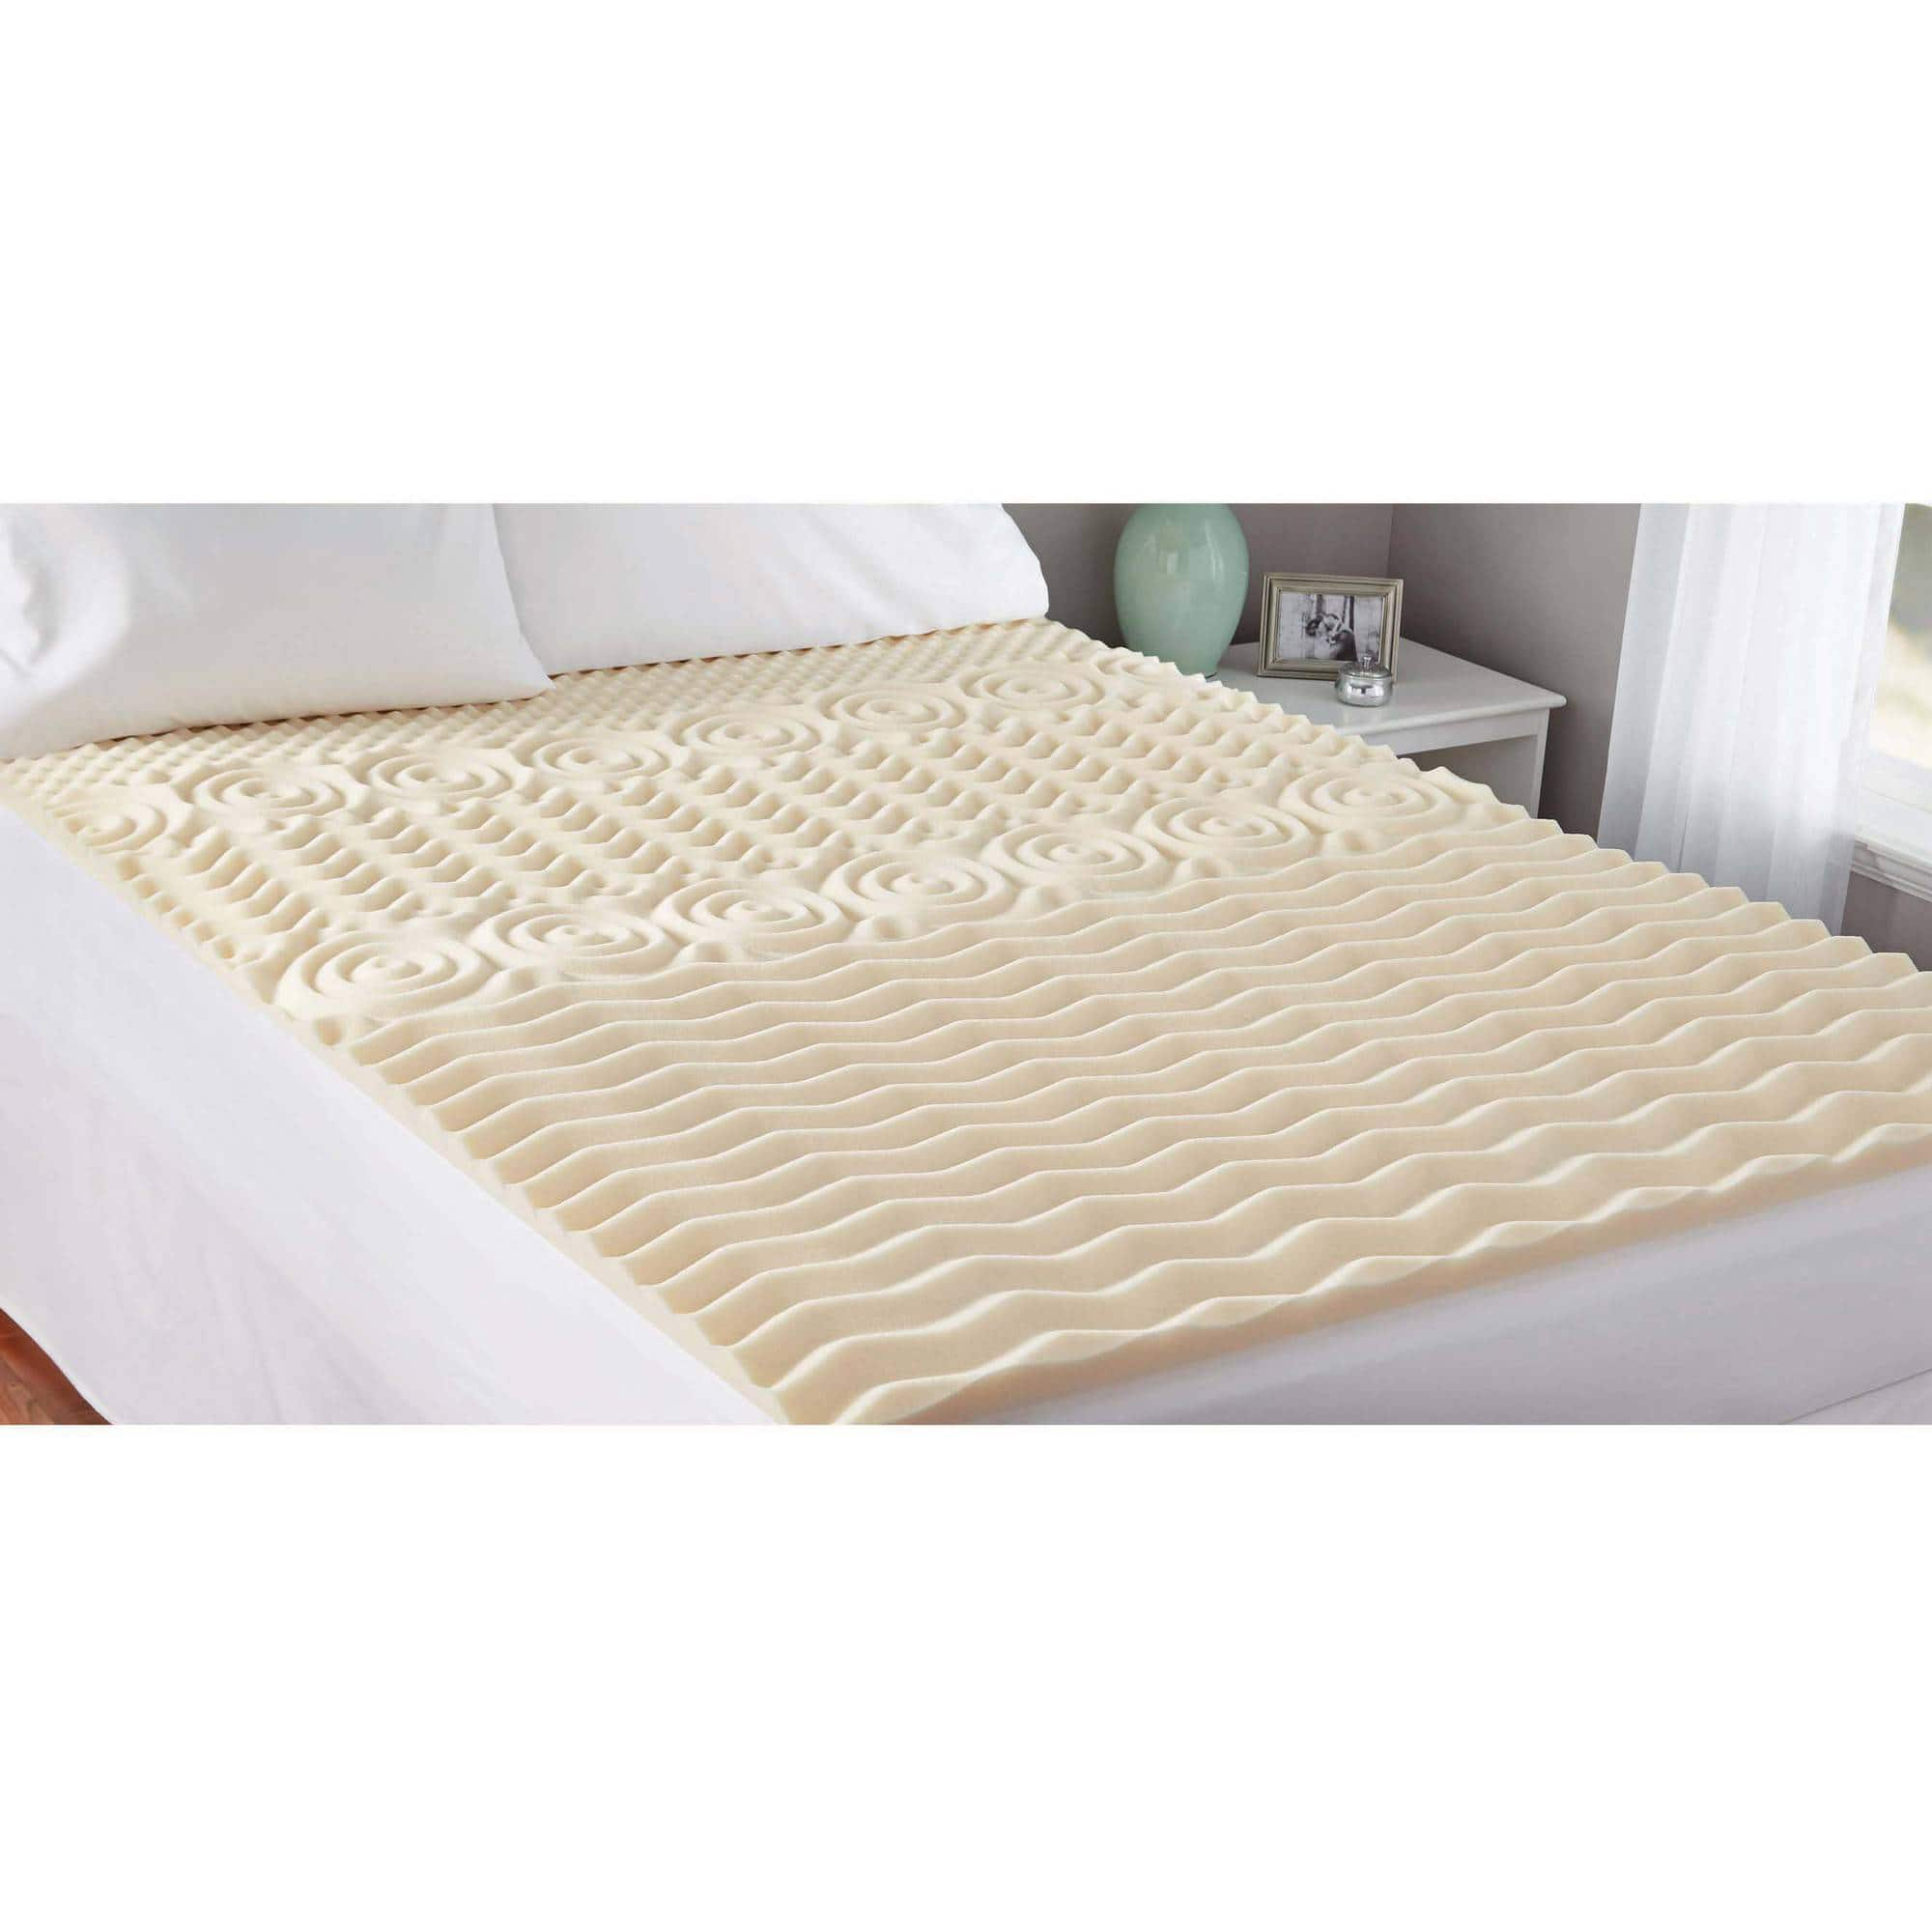 "Walmart: Mainstays 1.5"" Zoned Memory Foam Topper (Twin) $7"